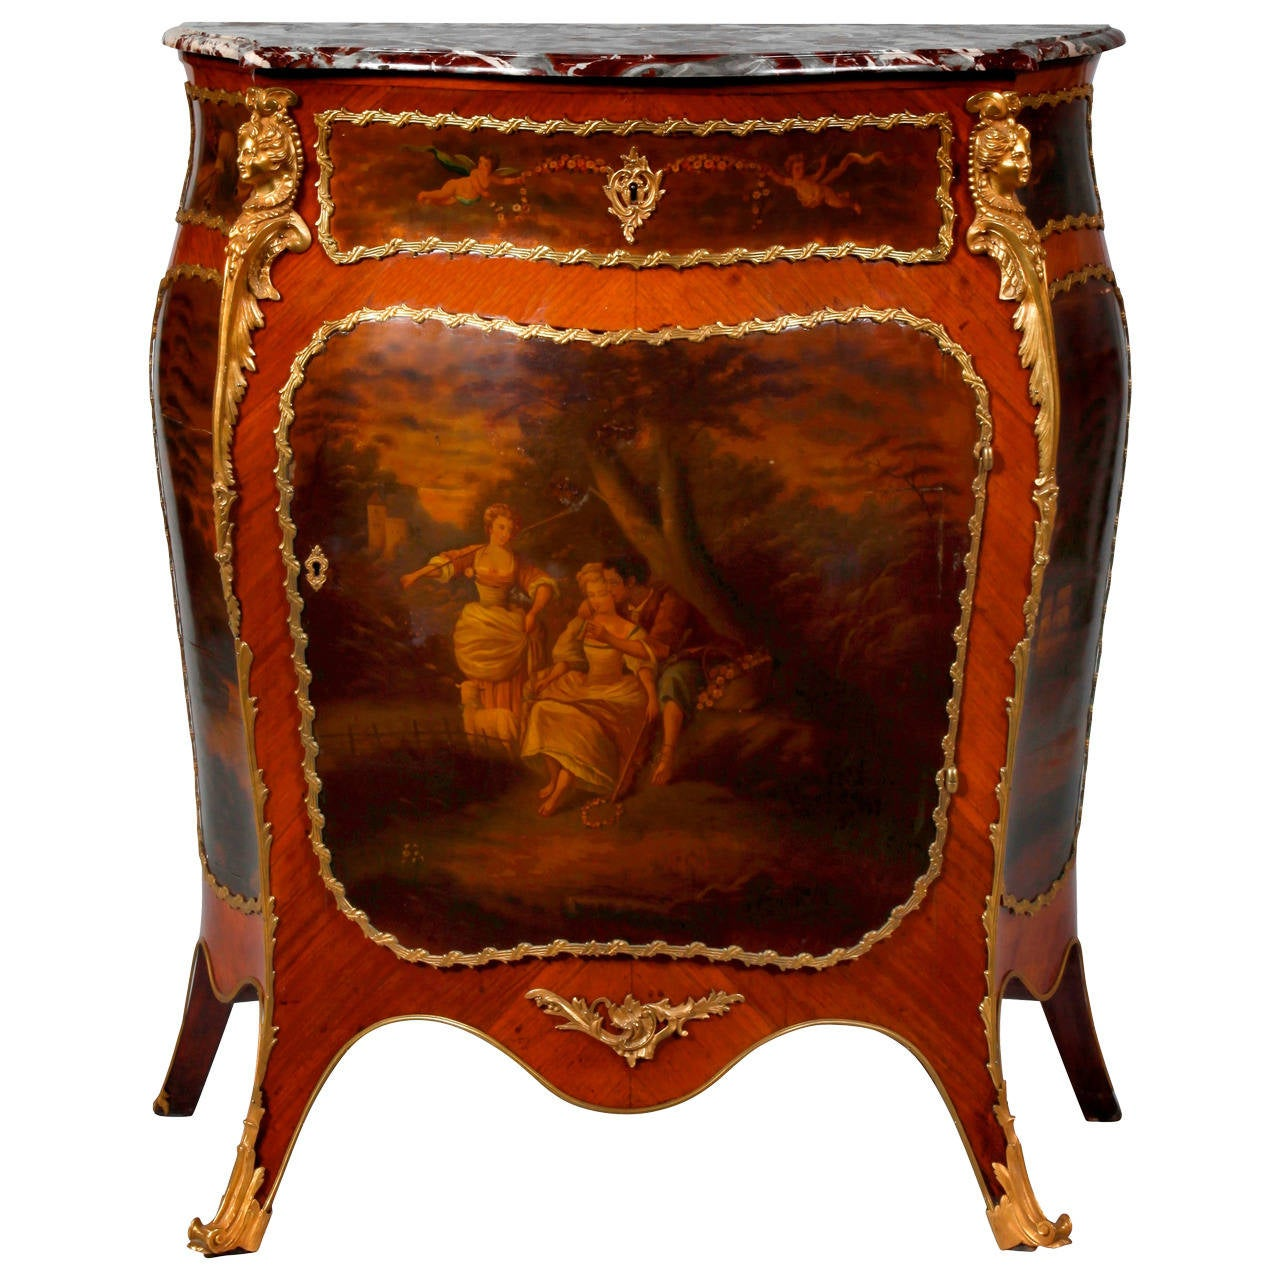 Louis XV Style Ormolu-Mounted Kingwood Vernis Martin Side Cabinet